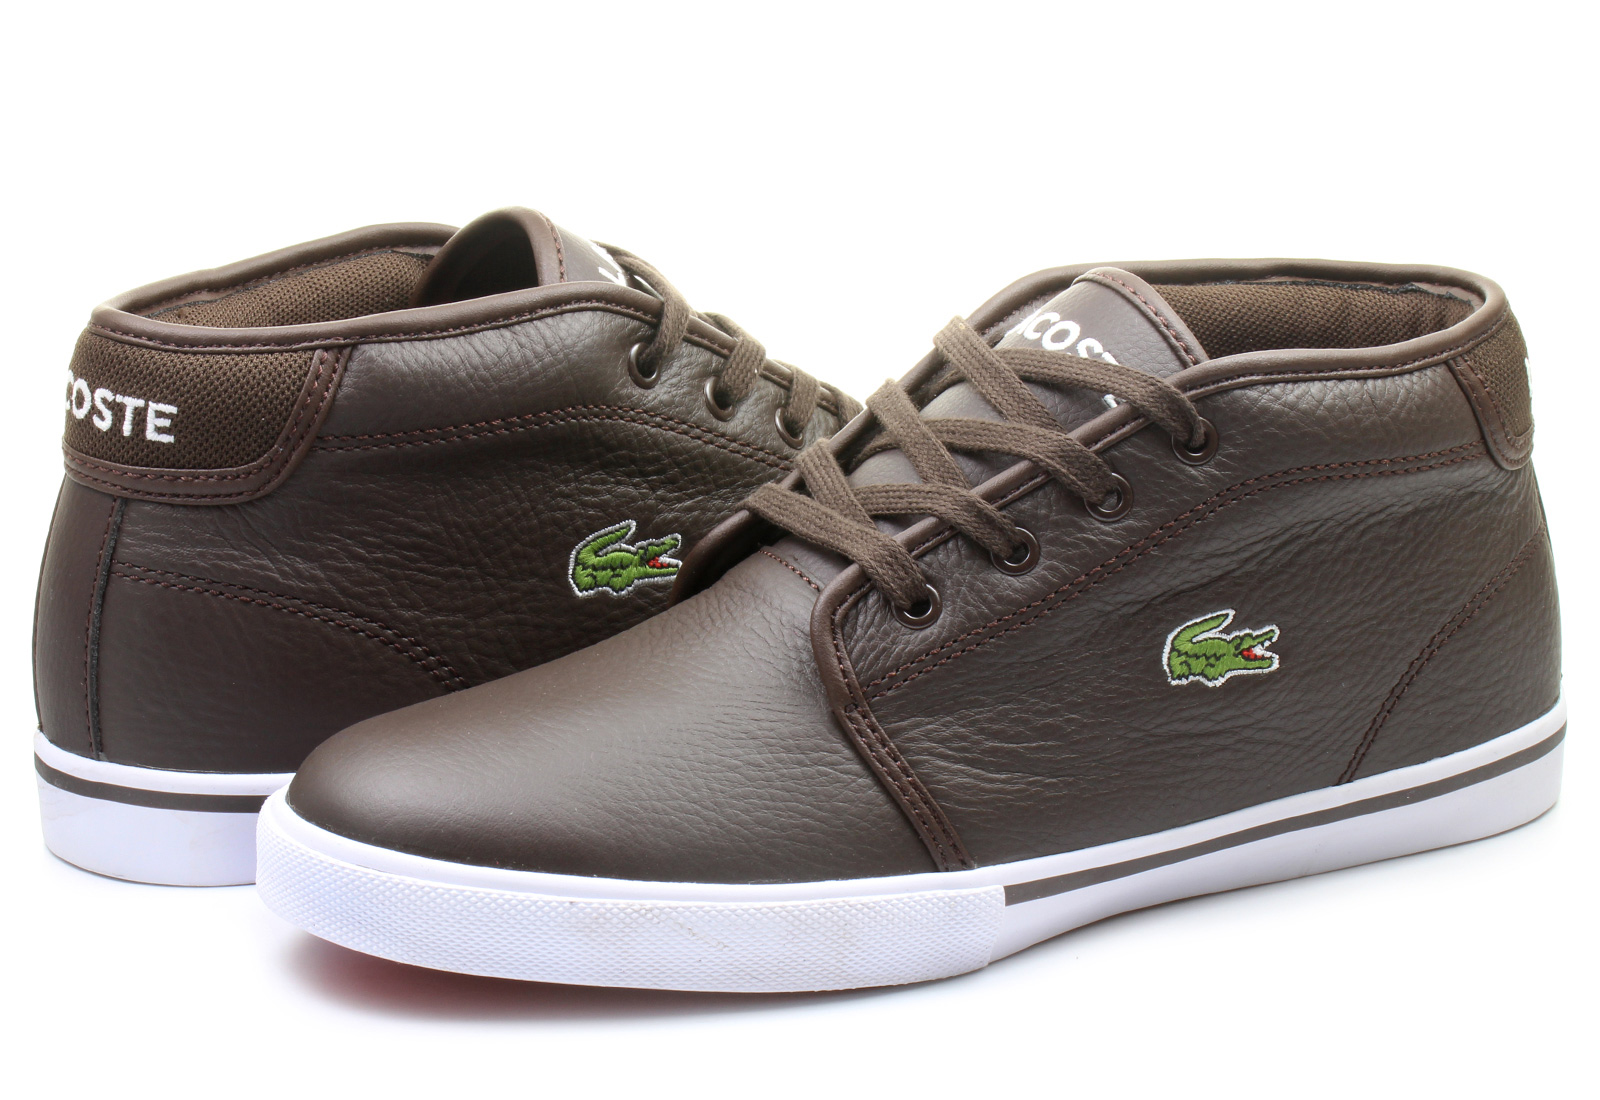 lacoste shoes ampthill 143spm1074 db2 online shop for sneakers shoes and boots. Black Bedroom Furniture Sets. Home Design Ideas